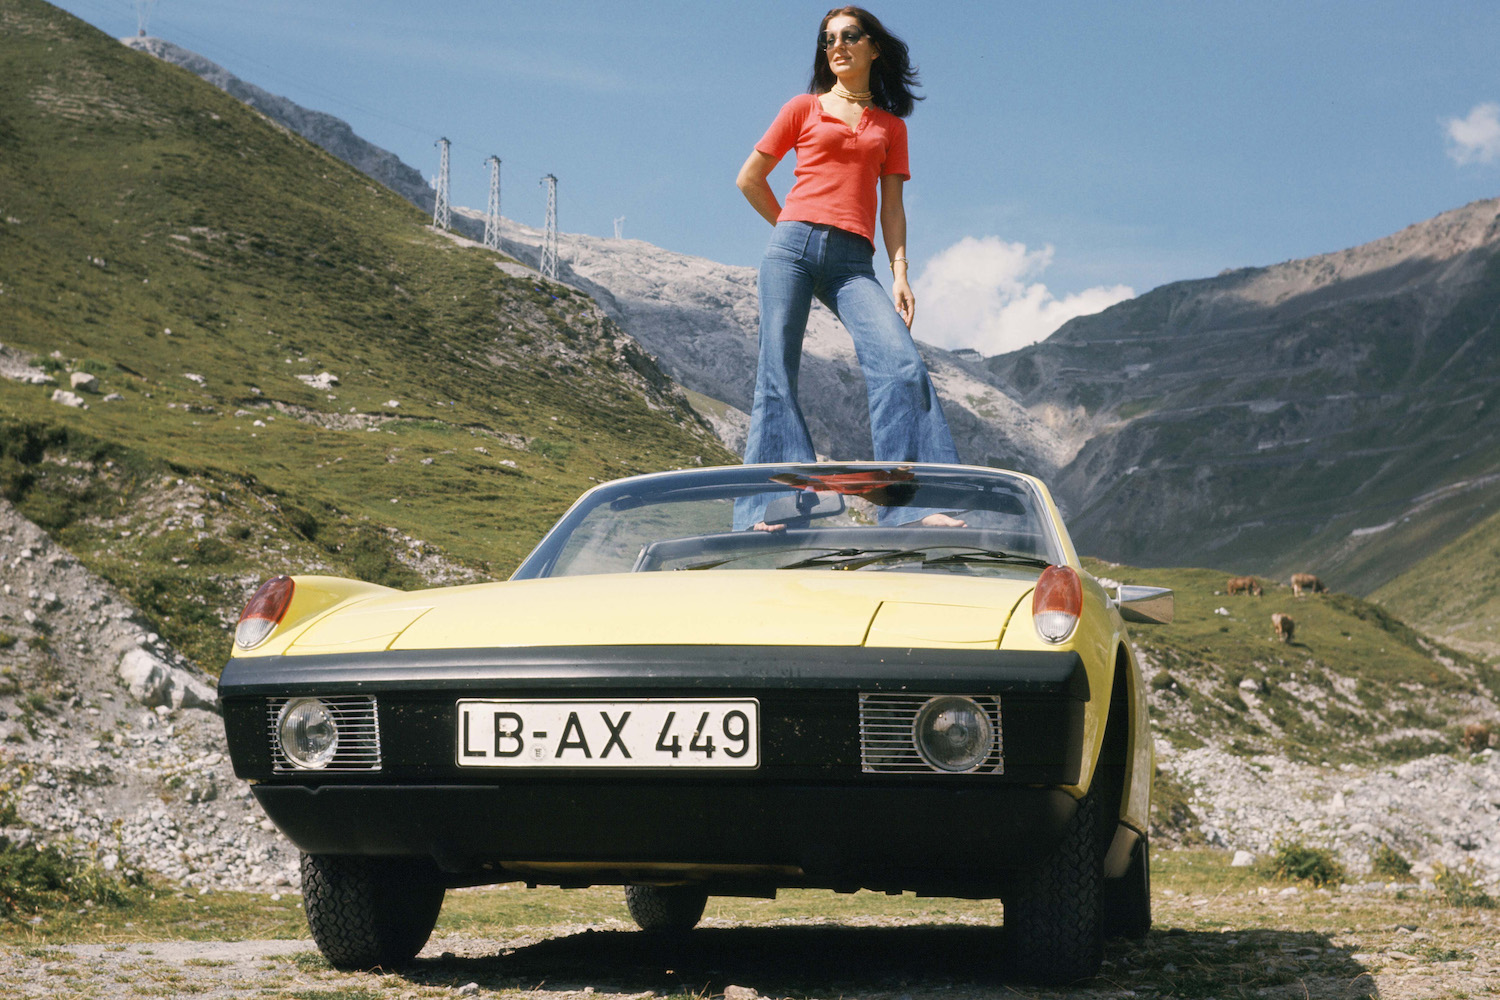 After 50 years, the Porsche 914 will only get better